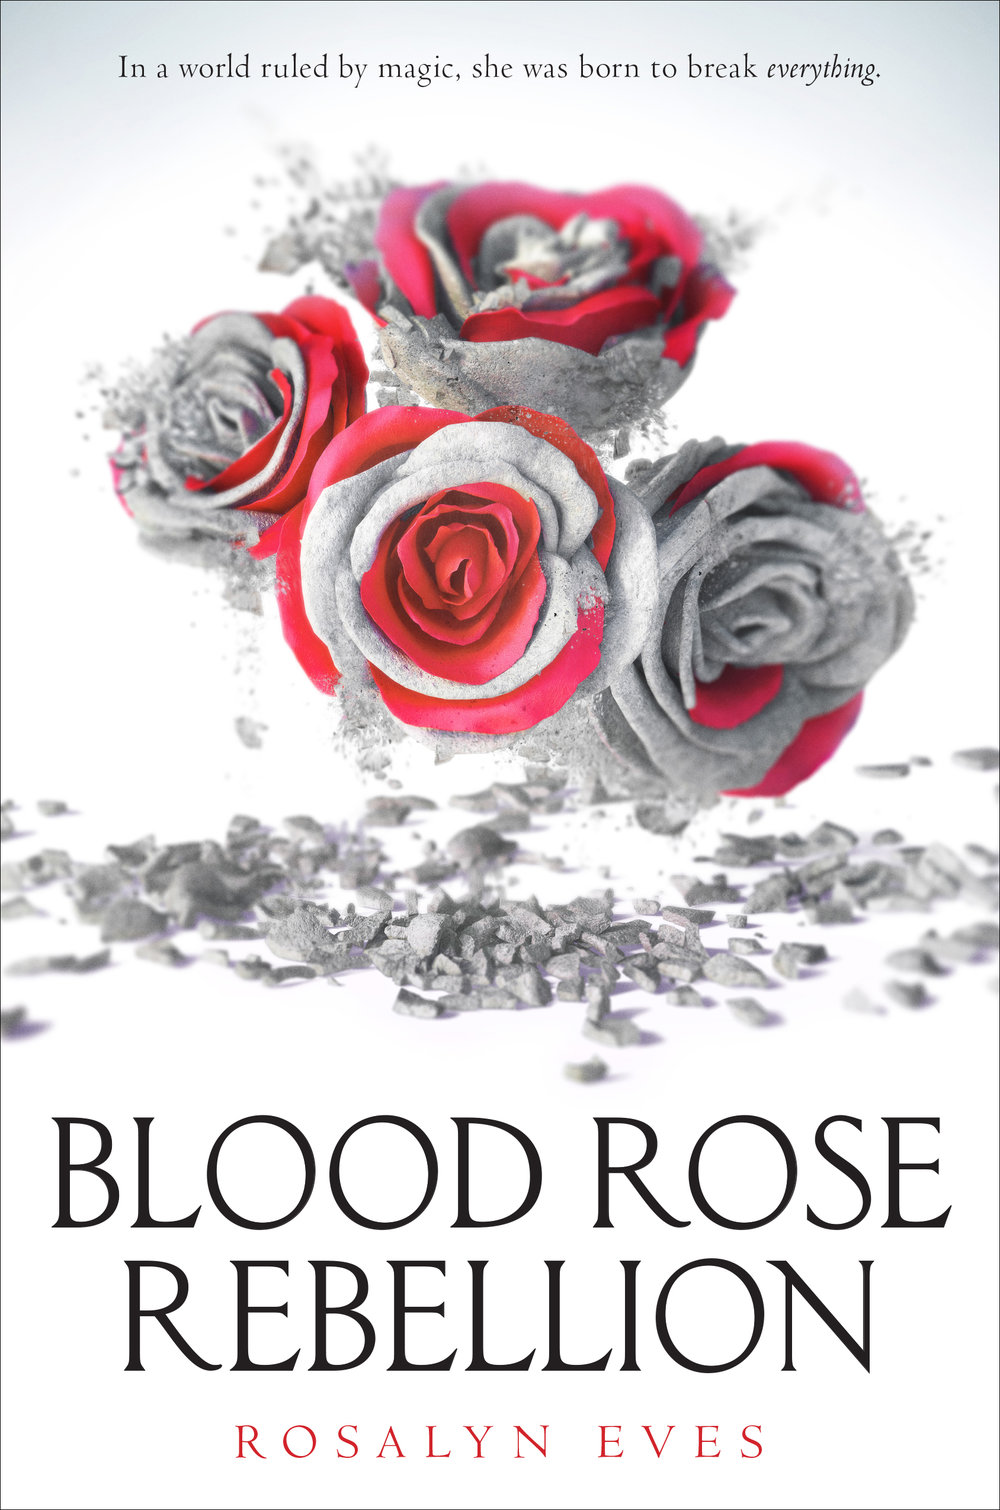 BLOOD ROSE REBELLION R3 V11 091916.jpg